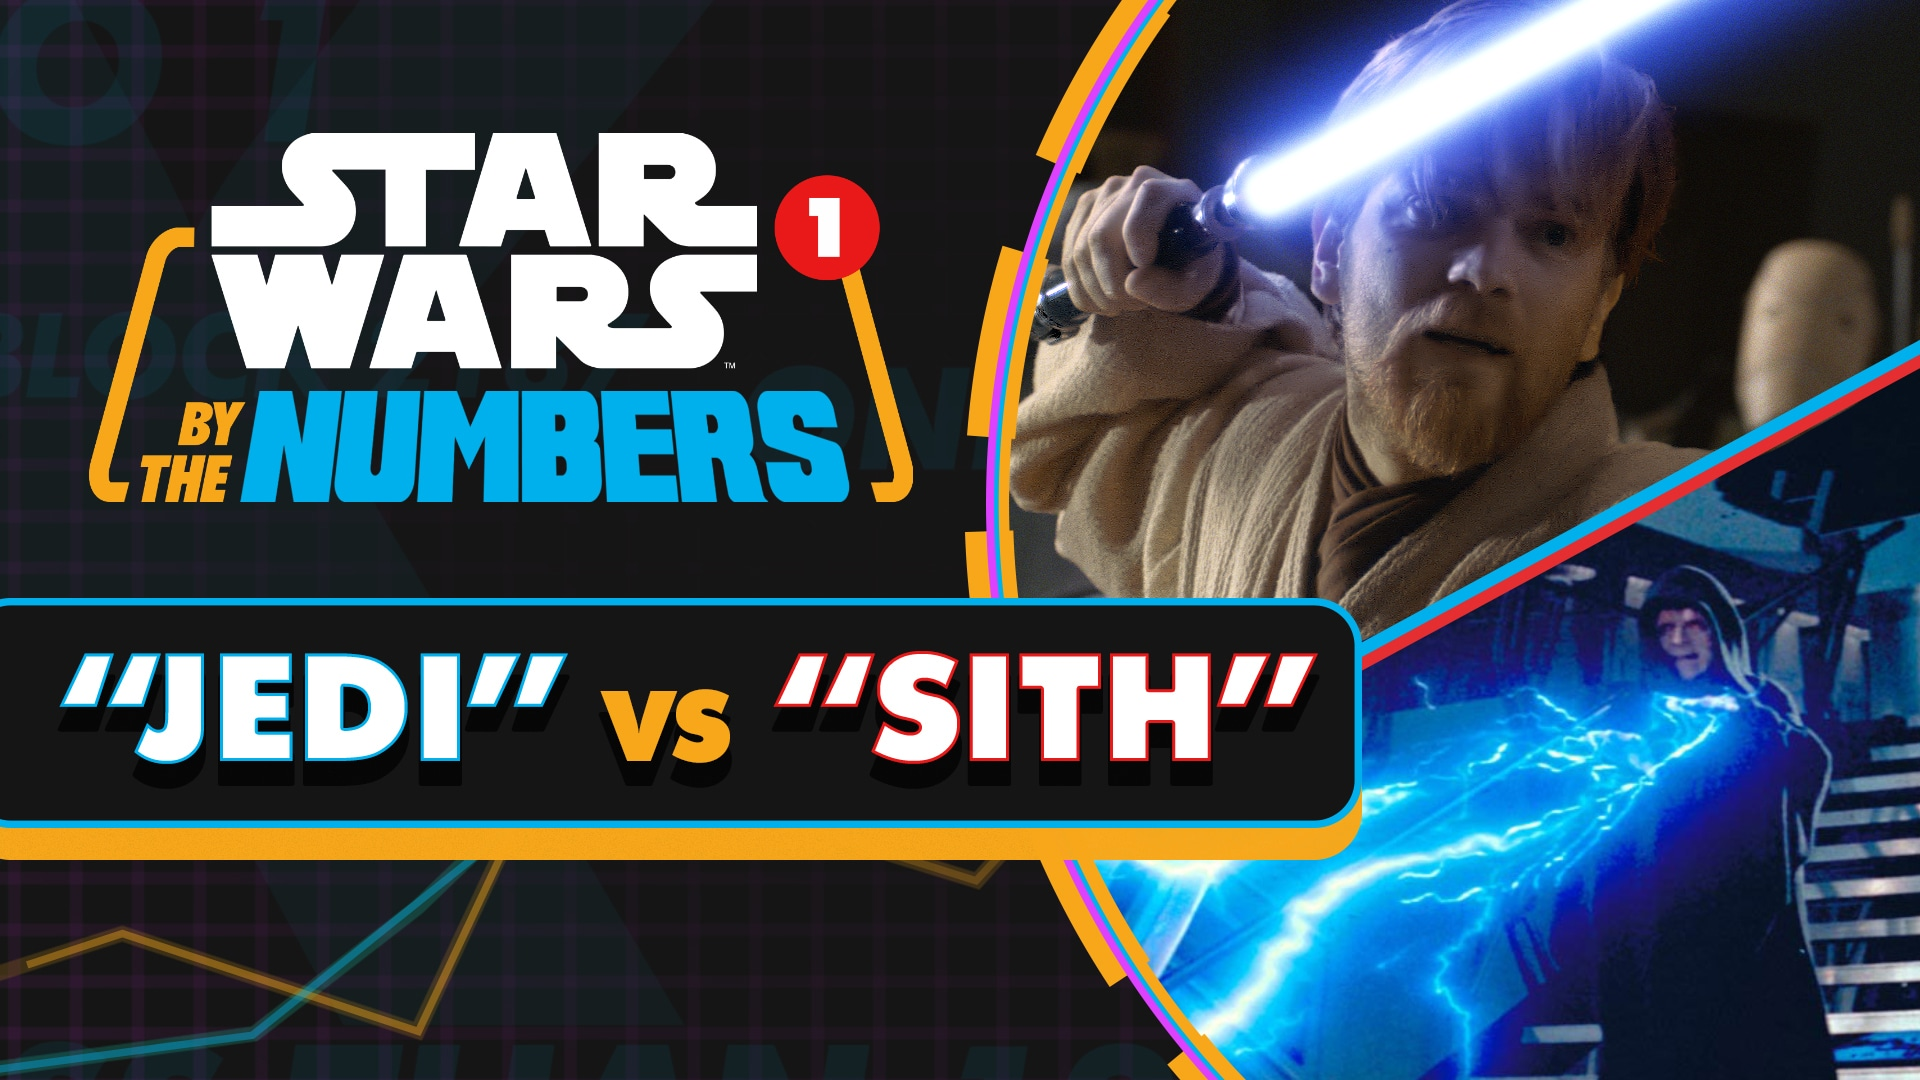 Every Time Jedi or Sith is Said in Star Wars Movies   Star Wars By the Numbers